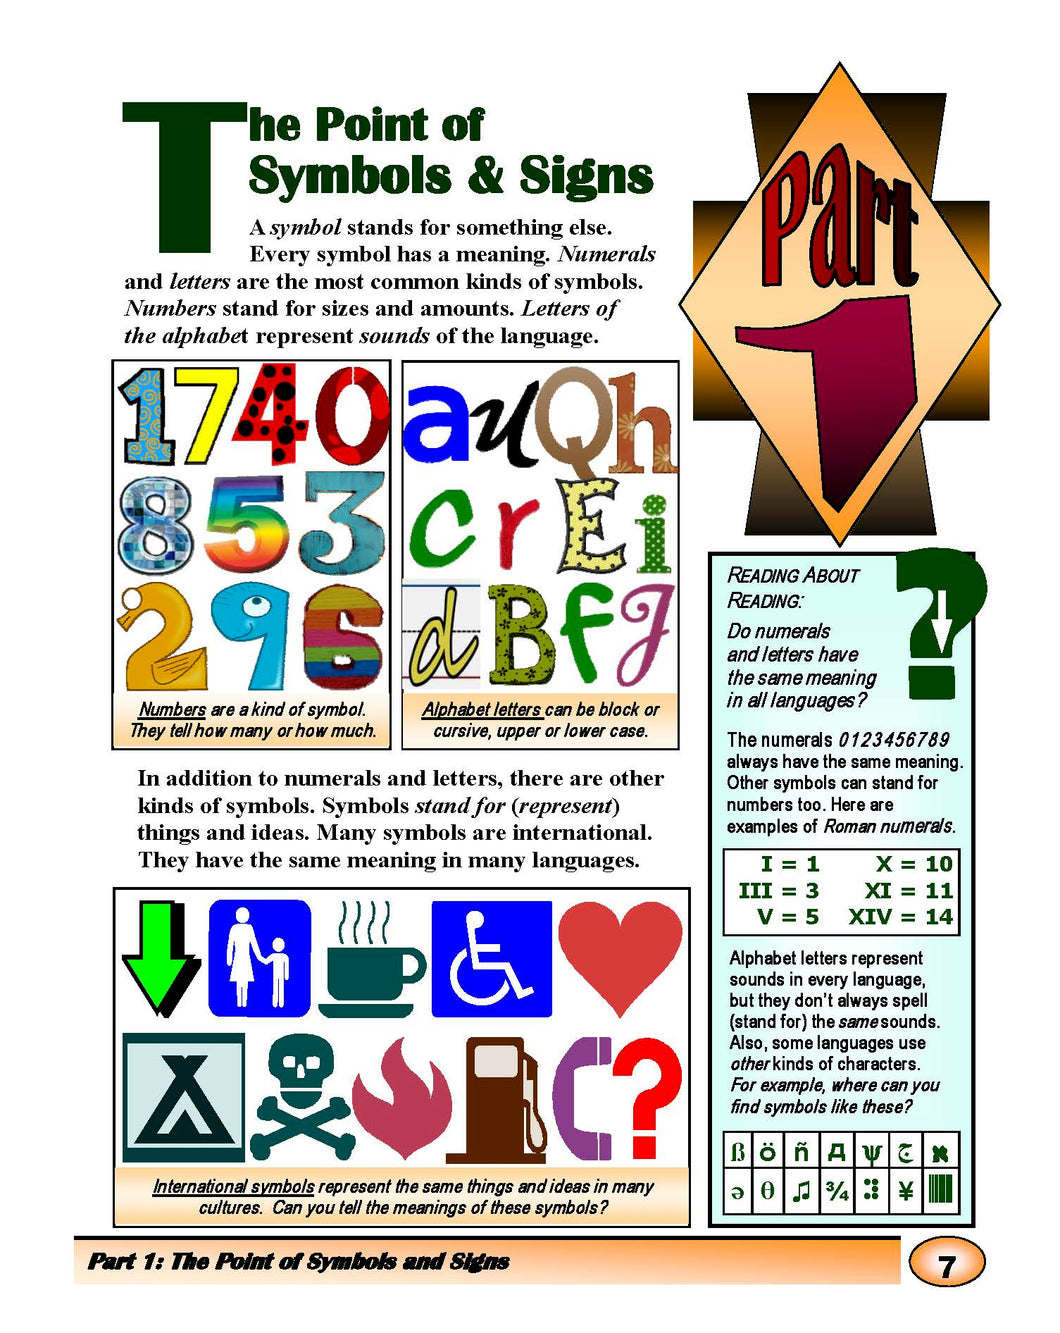 The Point of Symbols & Signs